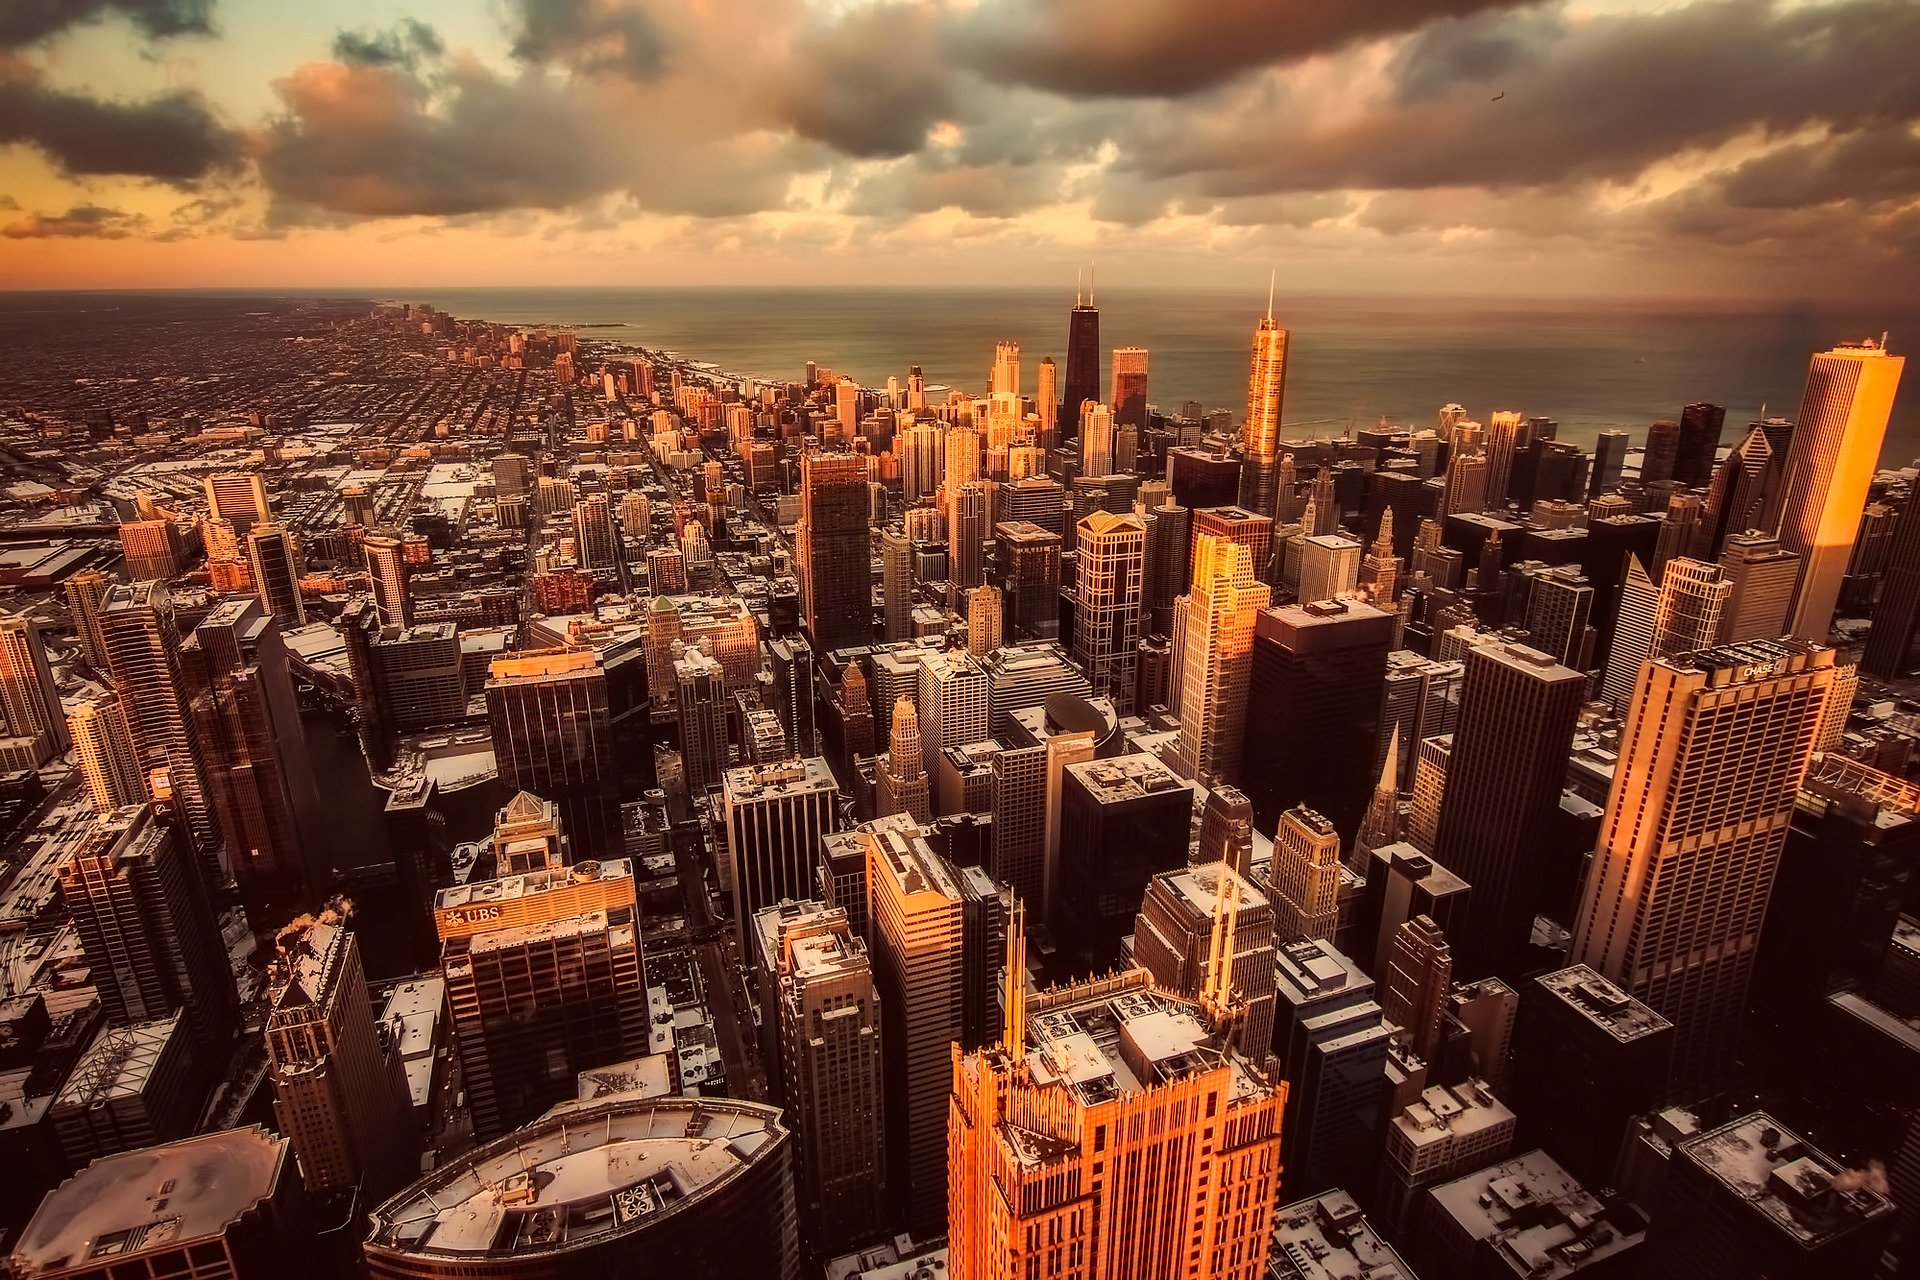 Illinois business attorneys, Business attorneys in Illinois, Illinois corporate attorneys, Corporate lawyers in Illinois